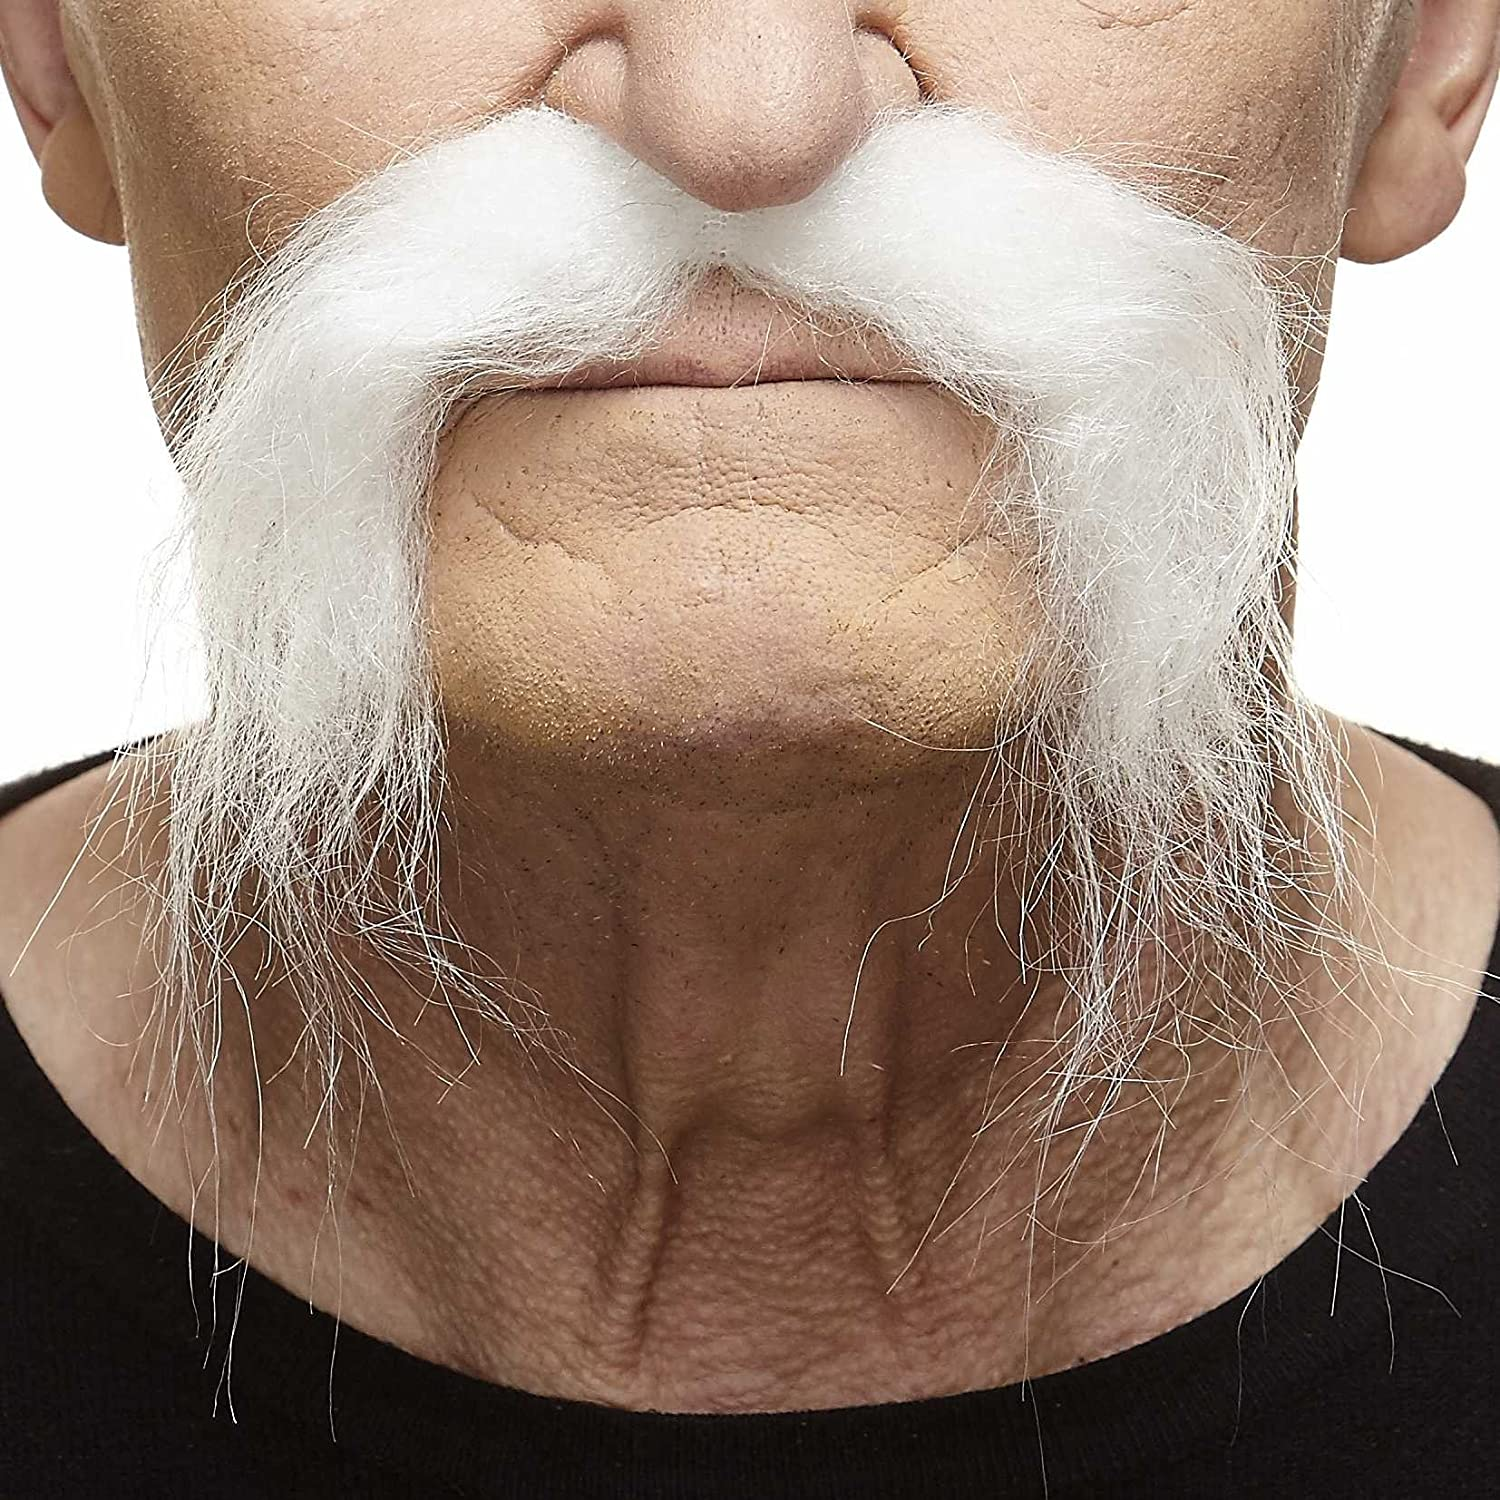 Mustaches Self Adhesive, Novelty, Fake, Realistic Fu Manchu Blond Color